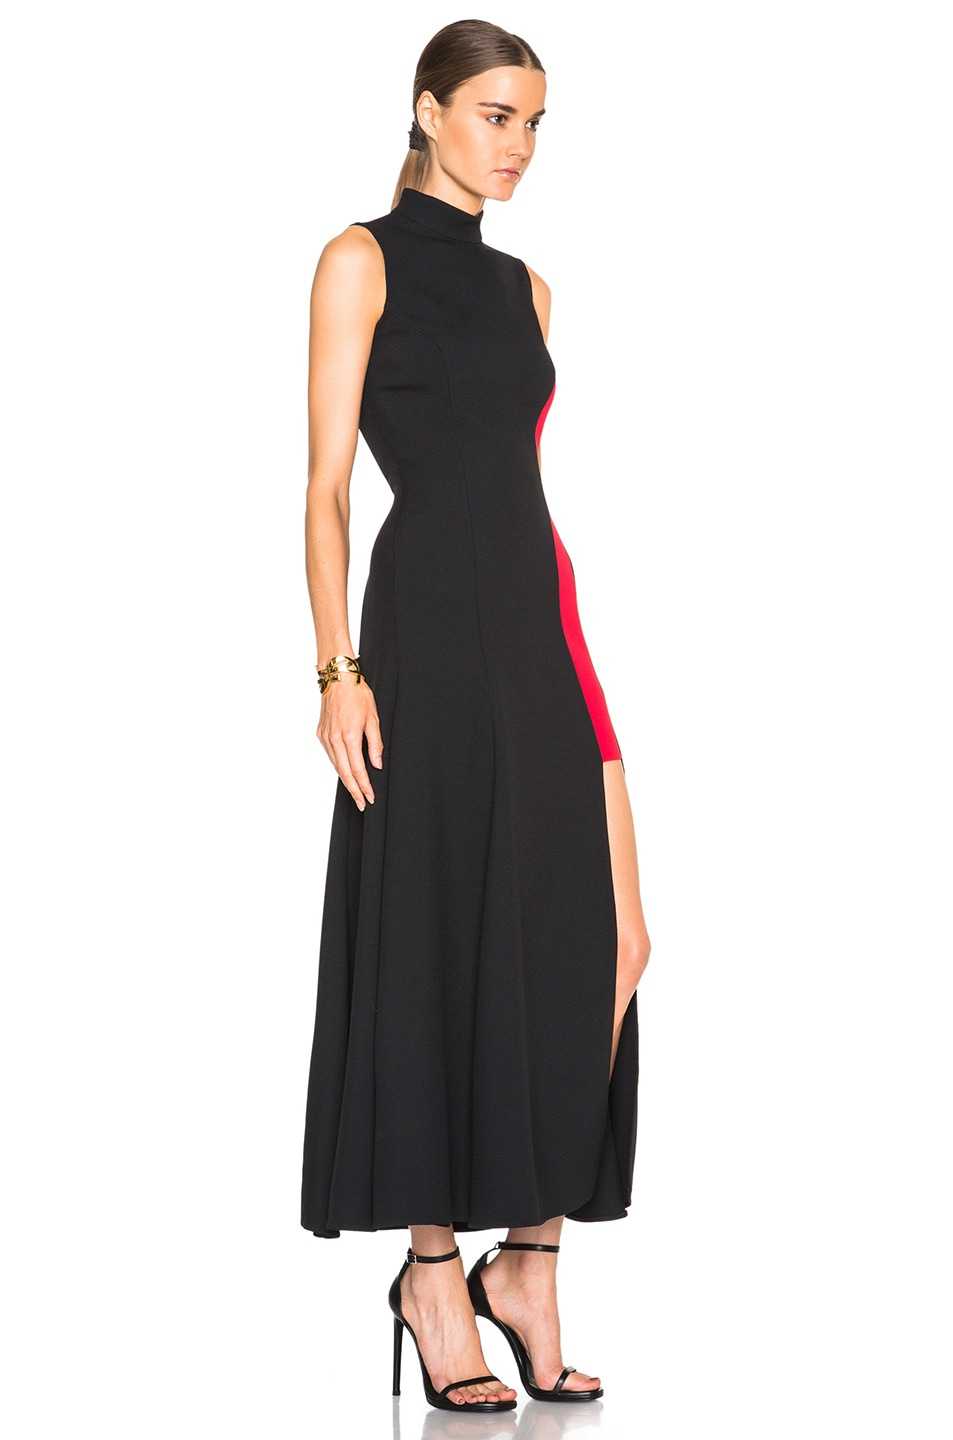 Black dress versace - Image 3 Of Versace Contrast Panel Dress In Black Red